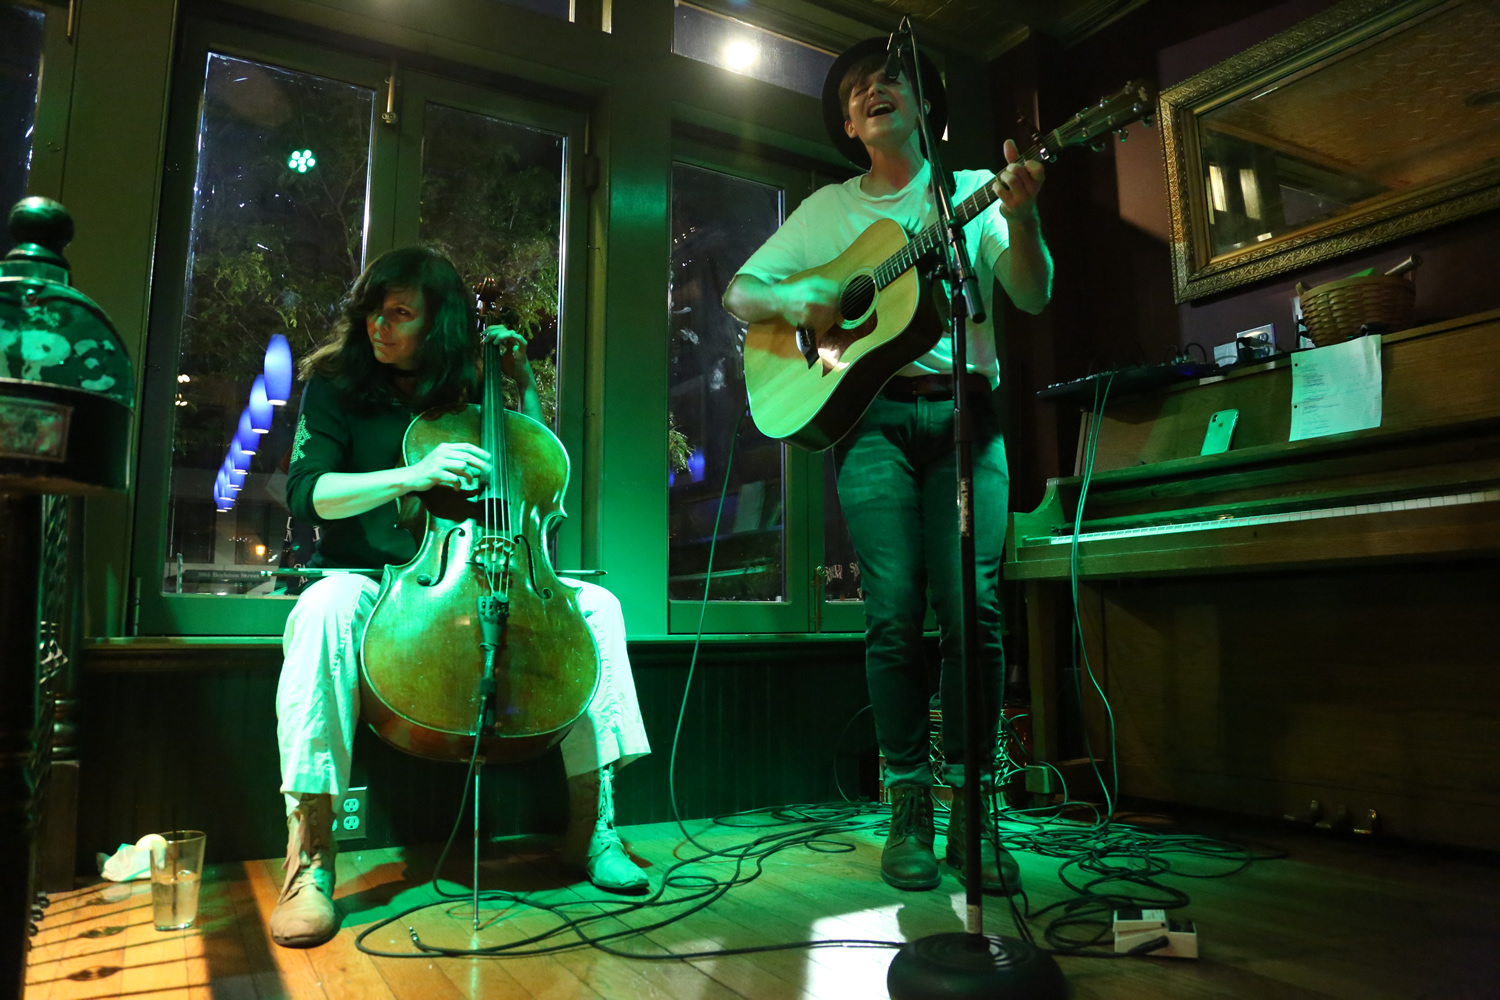 Helen Gillet playing at bar with singer songwriter